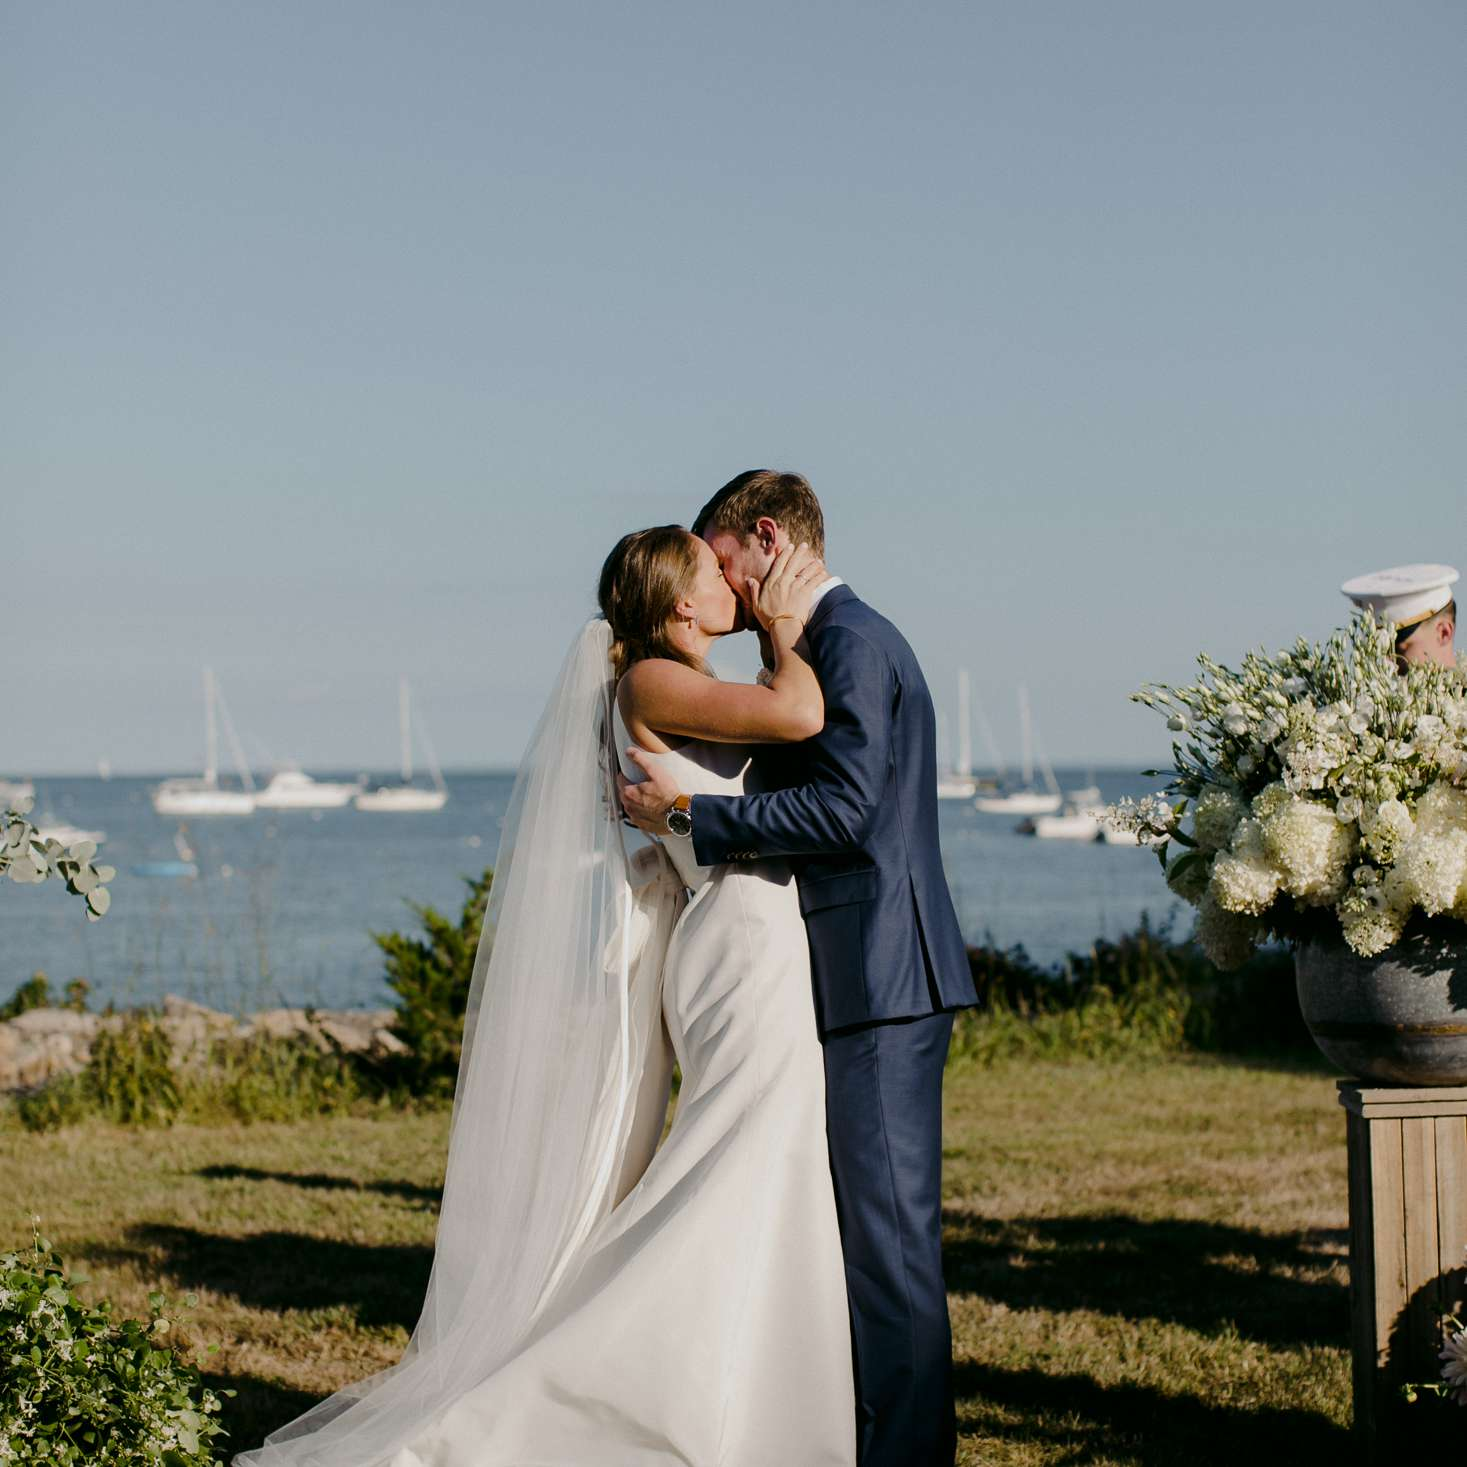 at-home rustic massachusetts wedding, bride and groom kissing